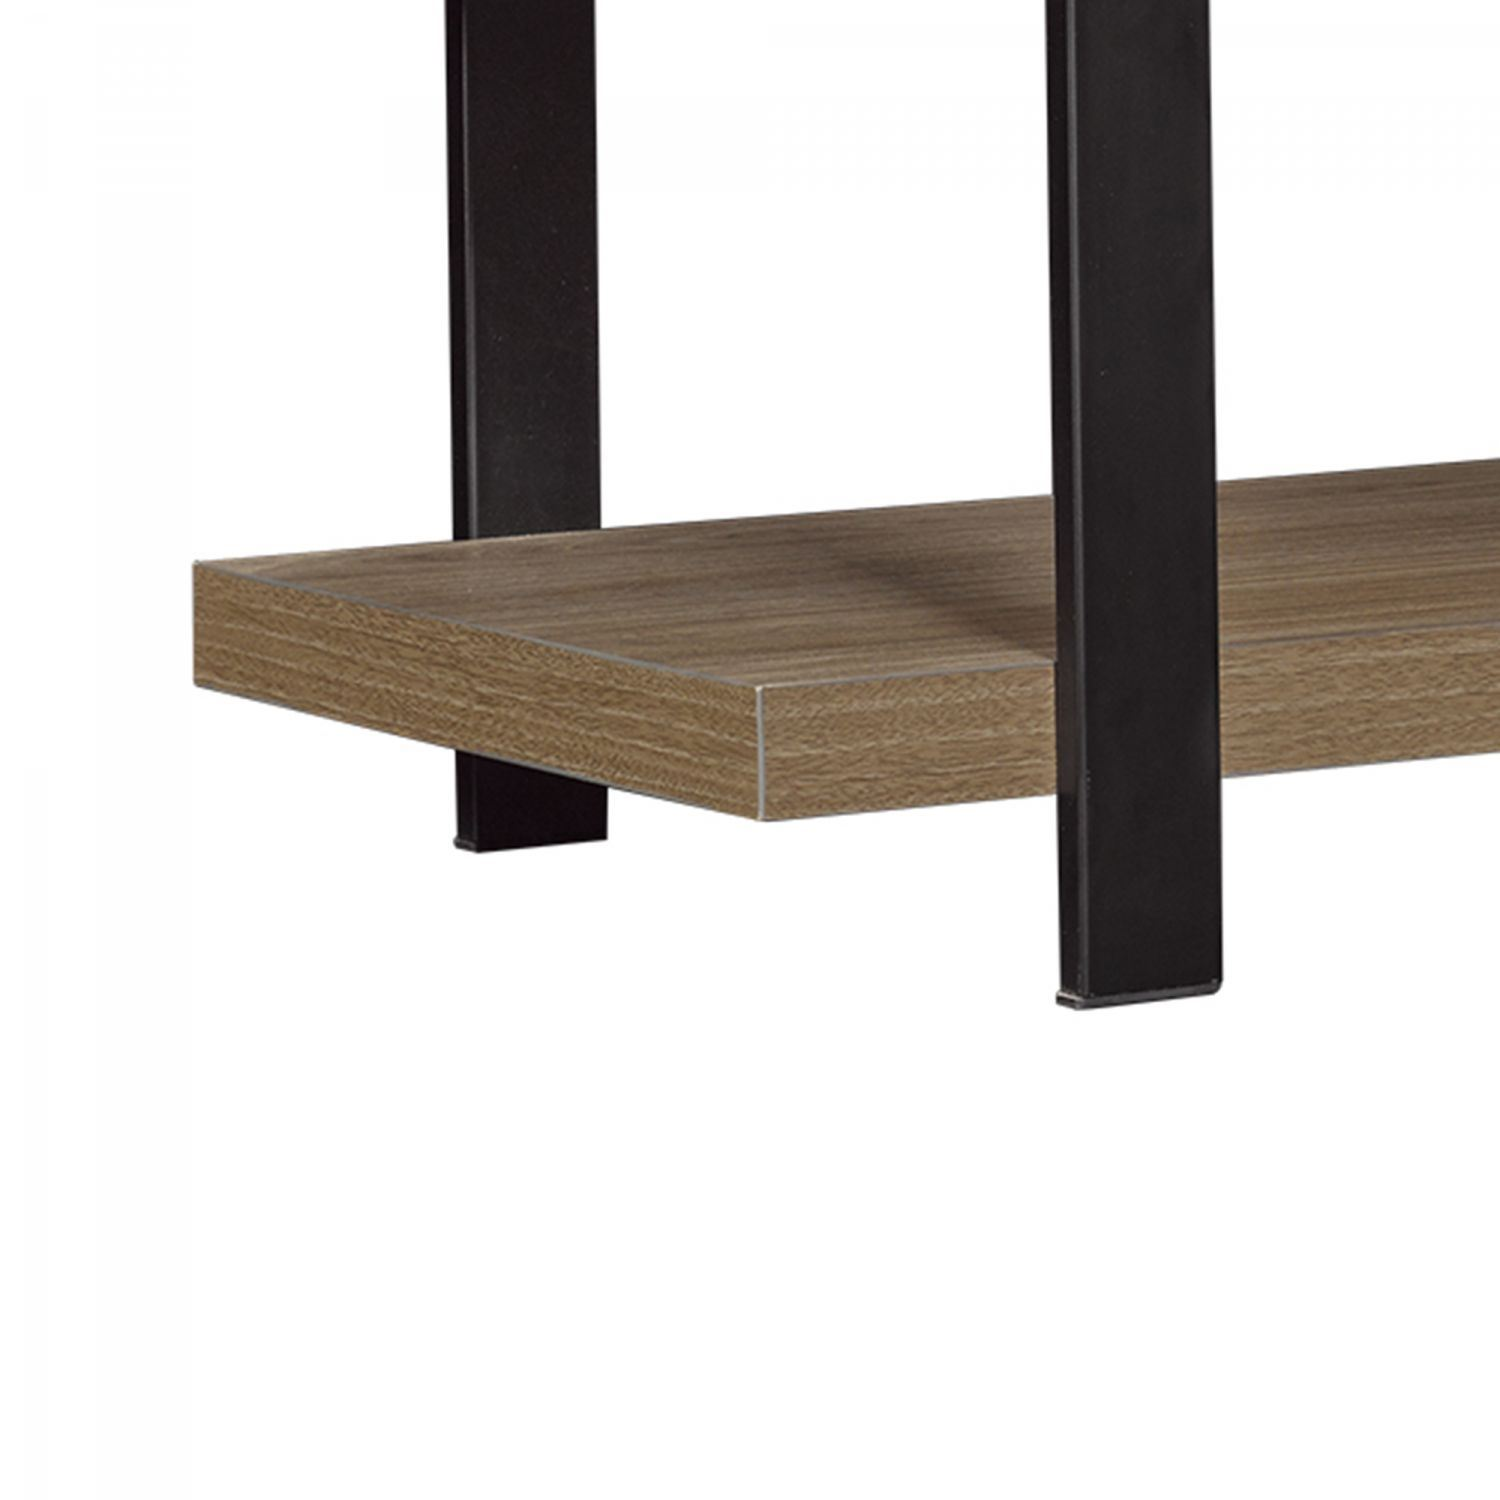 Oak harbor tv stand for tvs up to 60 in d tc56 6066 for Oak harbor furniture